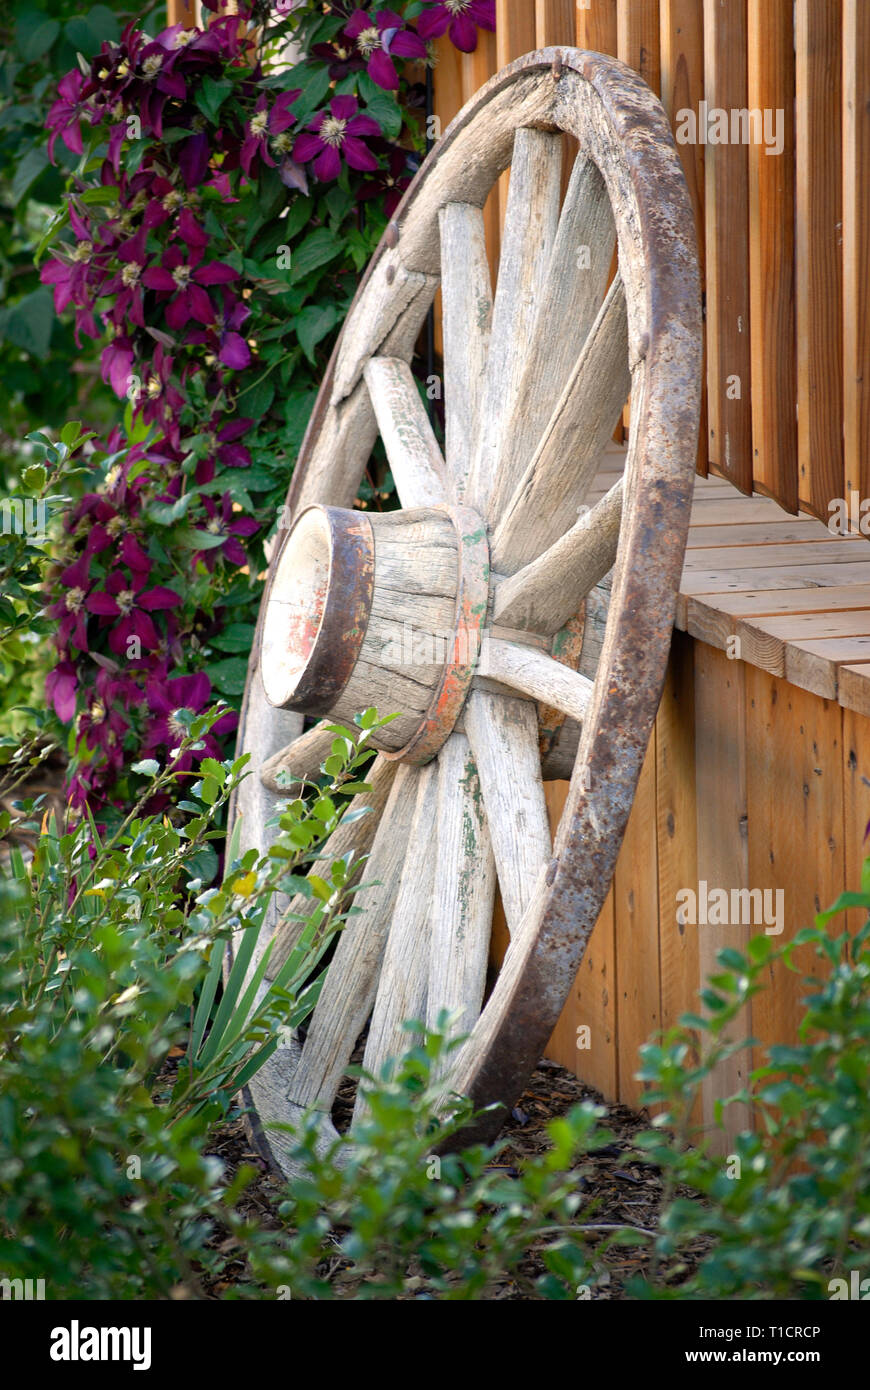 Merveilleux Old Wagon Wheel Against Fence In Flower Garden For ...